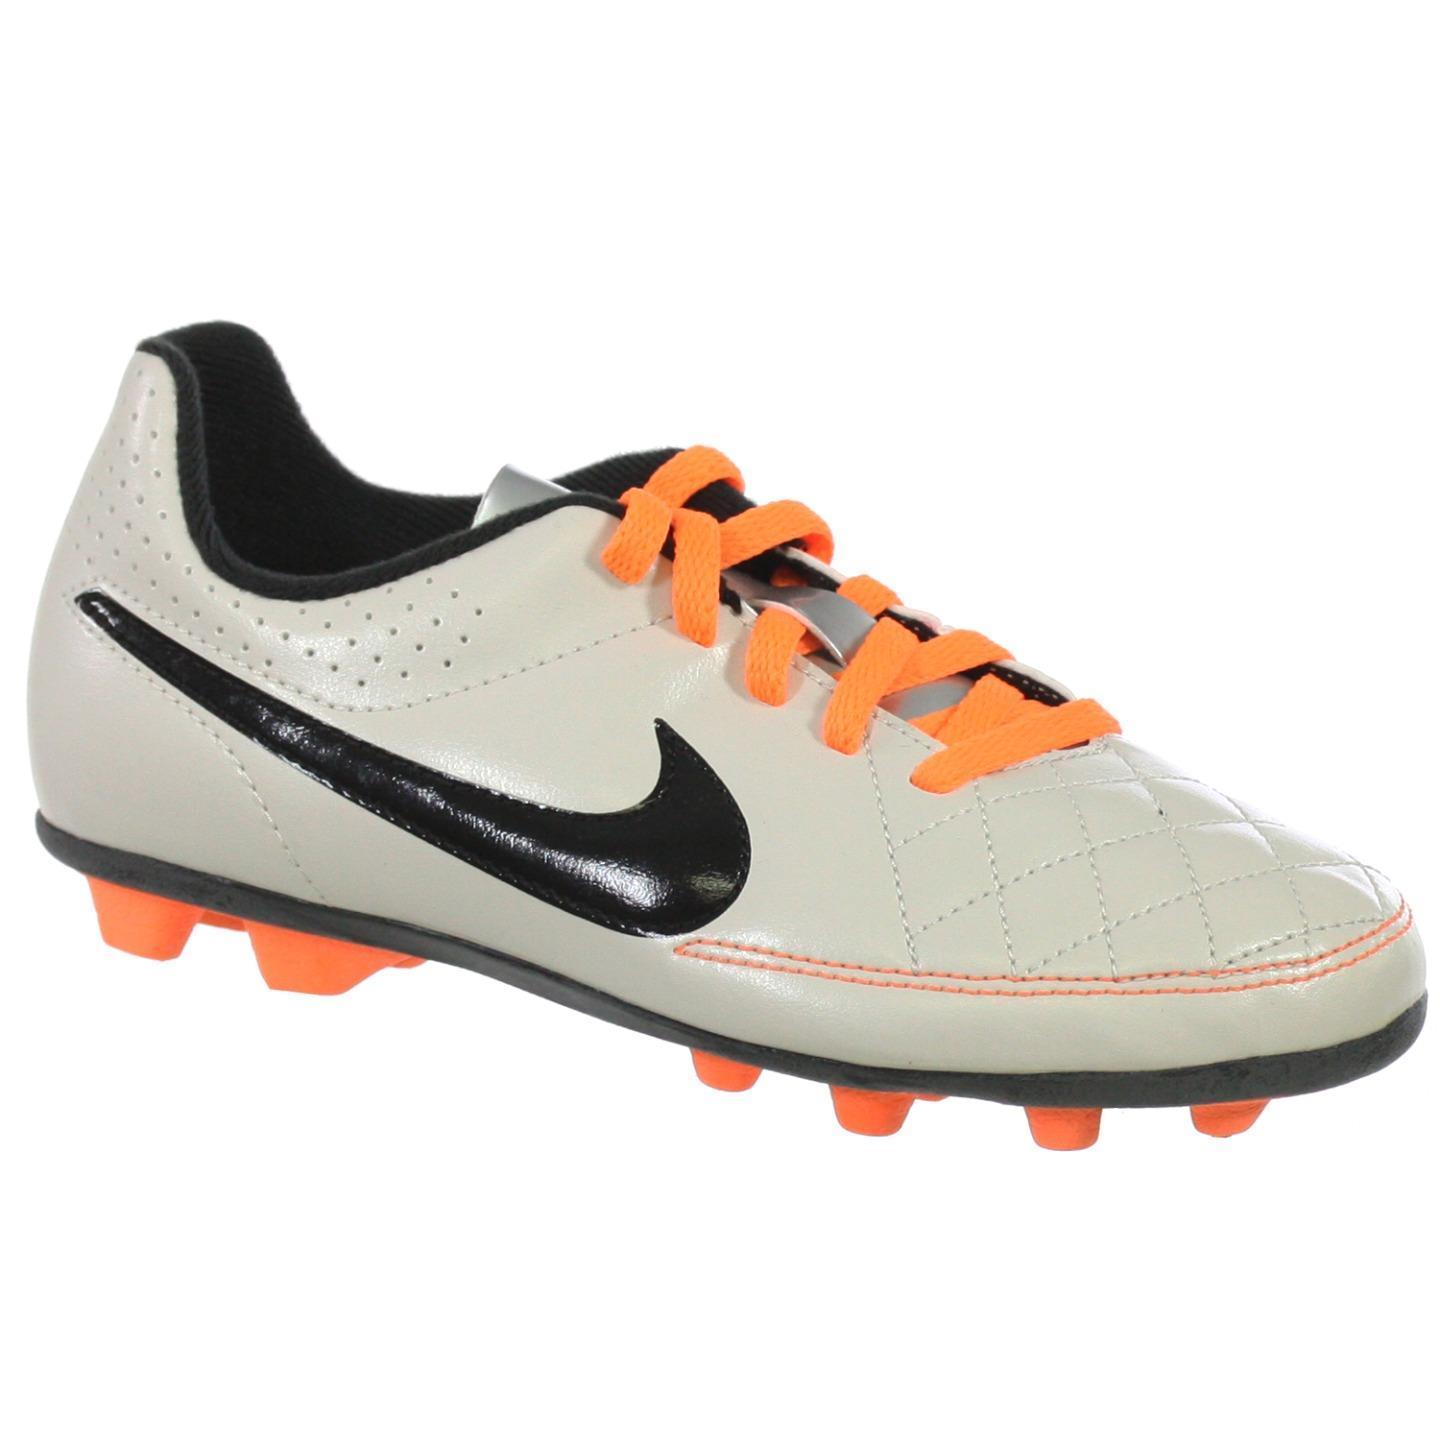 c923e4276552 Shop NIKE JR TIEMPO RIO II FG-R Youth Molded Soccer Cleats - Free ...